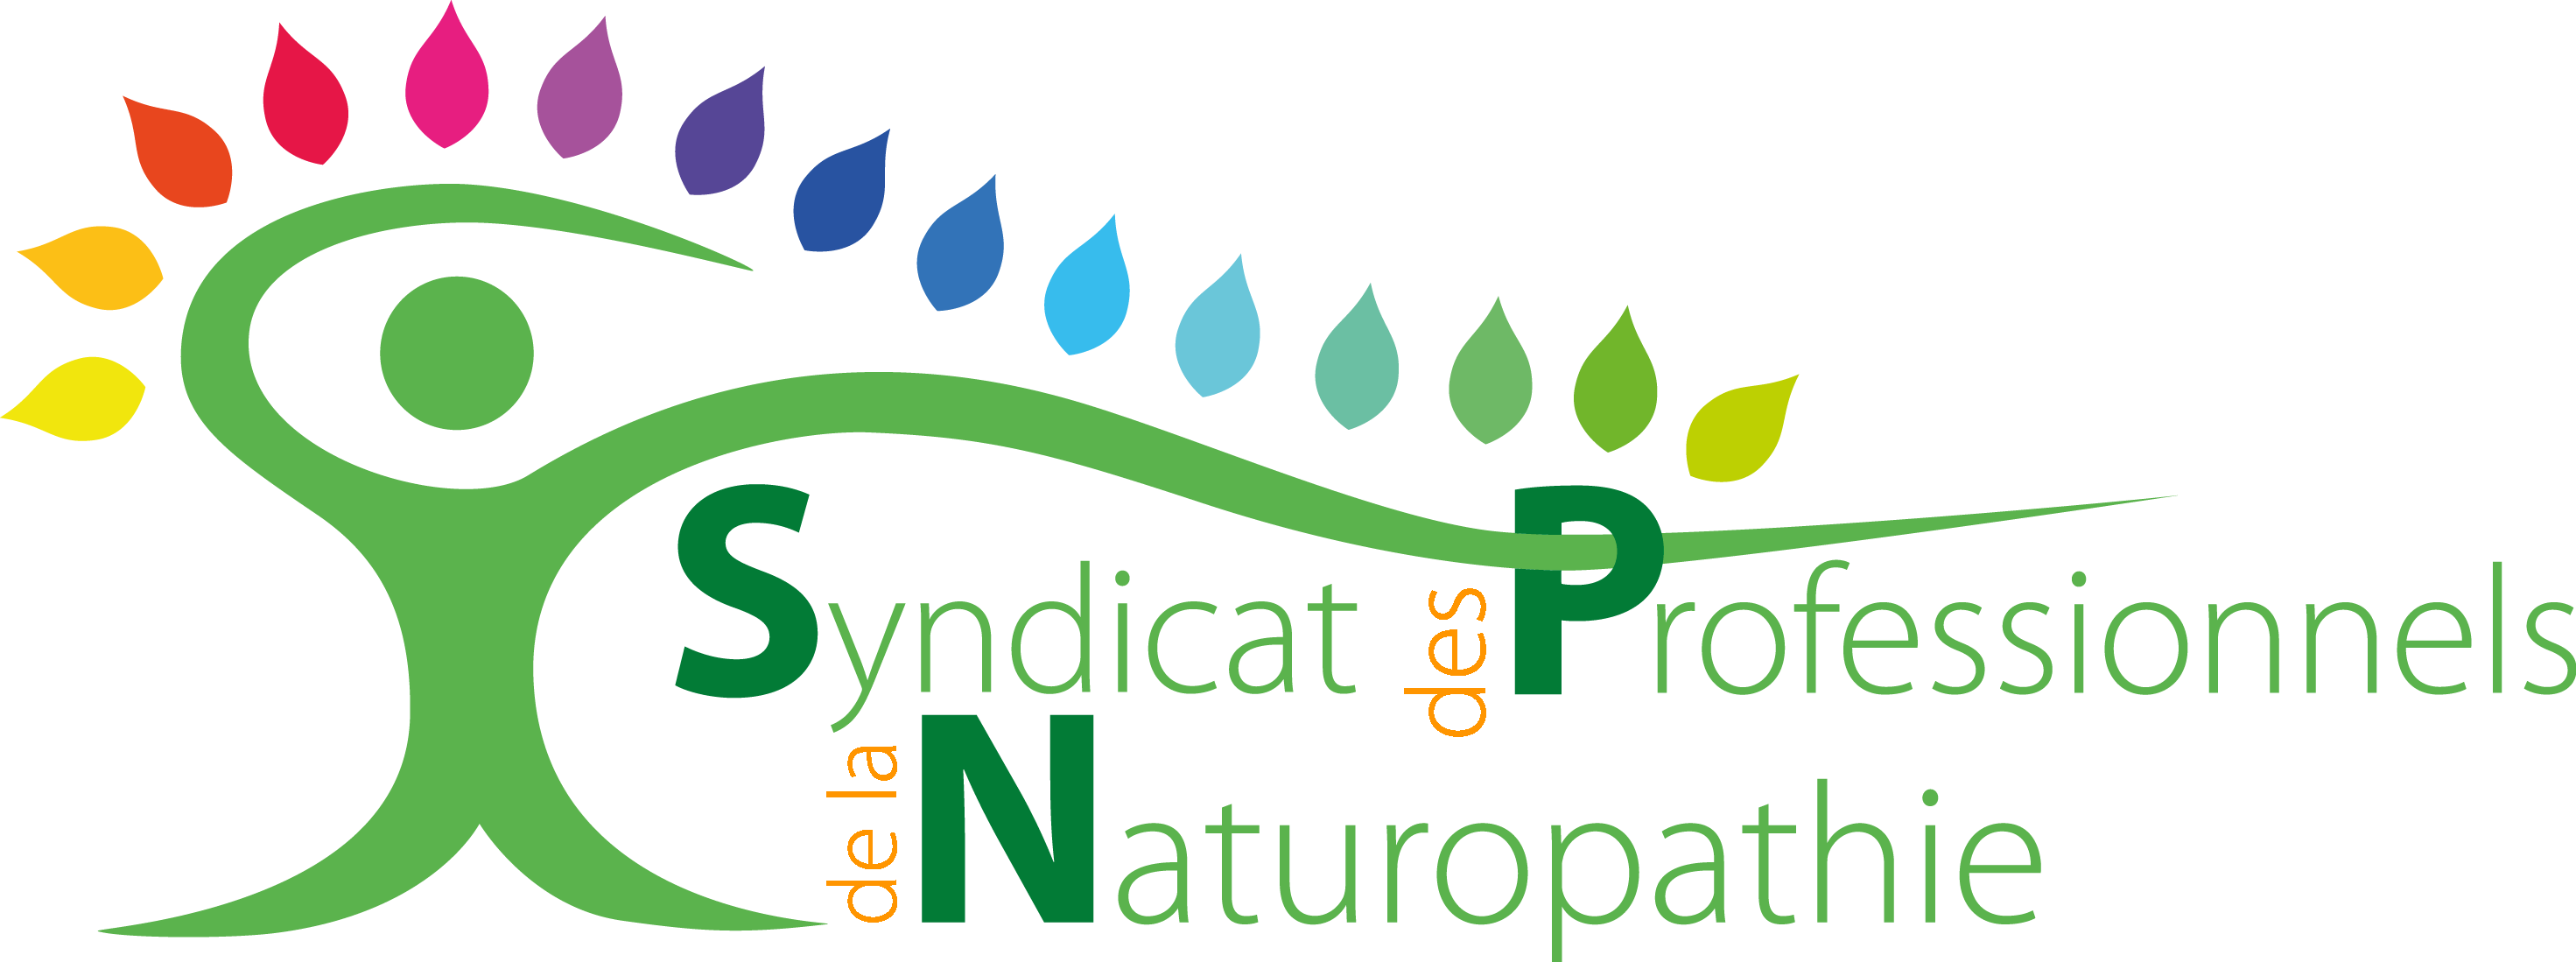 Syndicat des Professionnels de la Naturopathie SPN